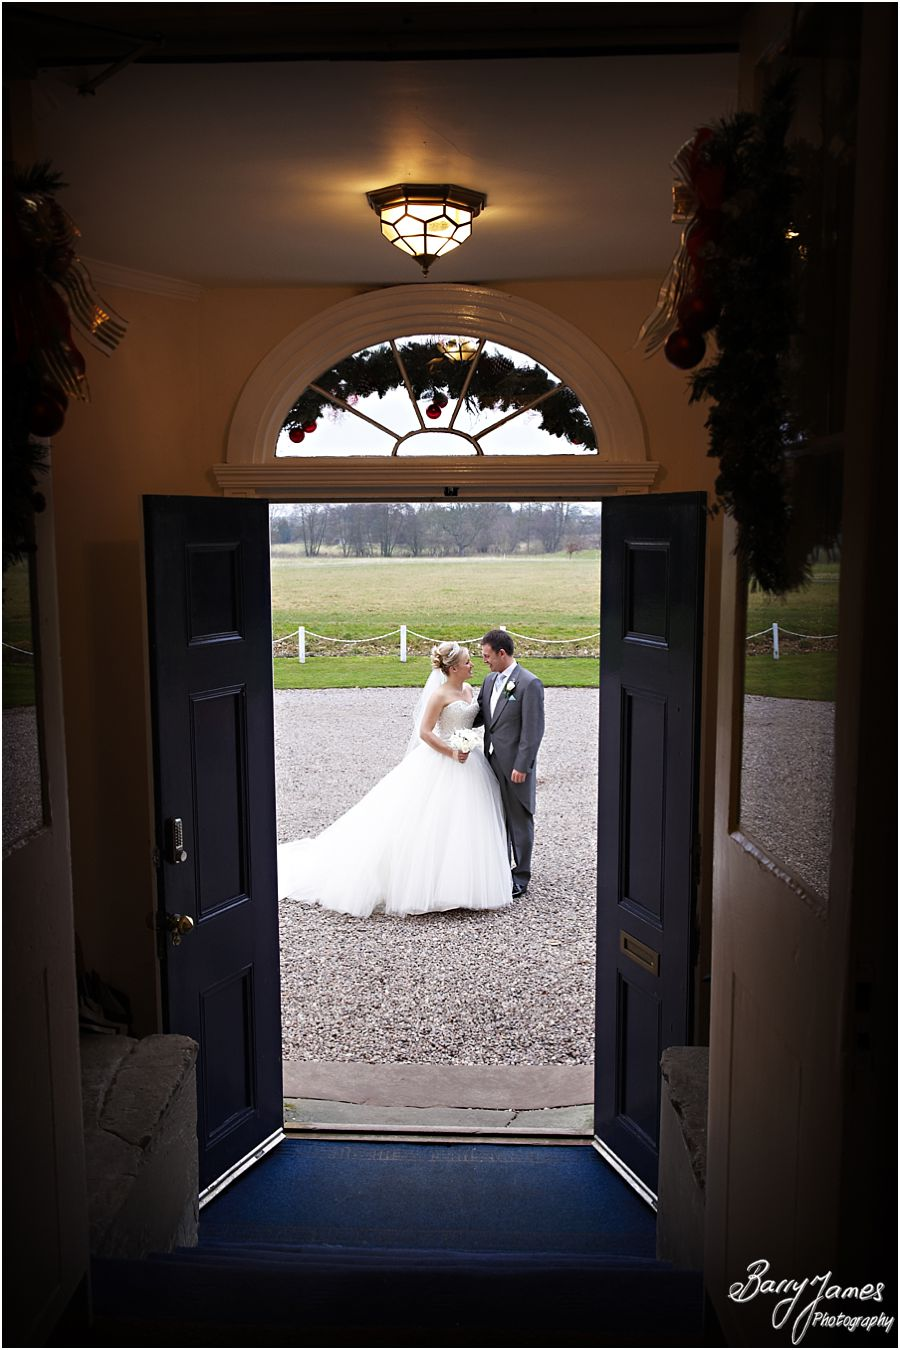 Unobtrusive reportage wedding photography of a winter weddings at Somerford Hall in Brewood by Staffordshire Wedding Photographer Barry James